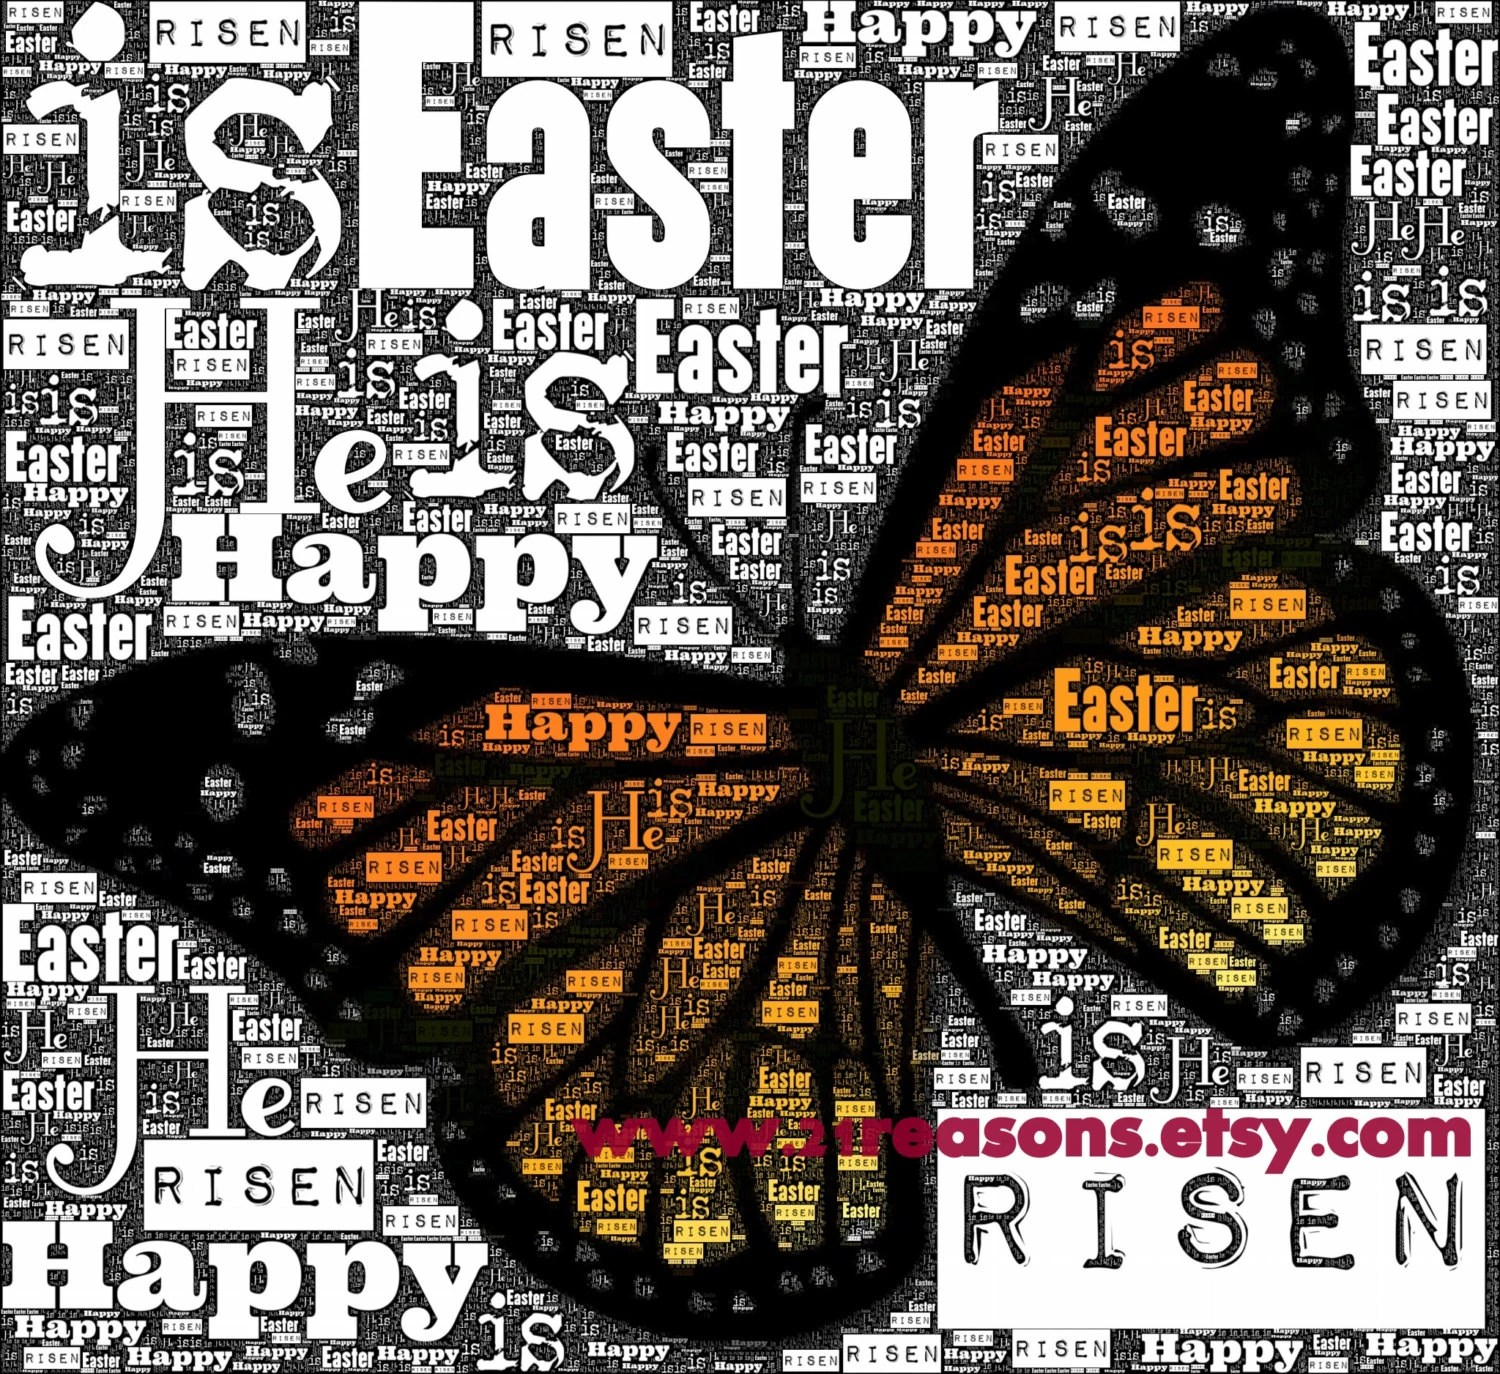 Easter Art - Printable JPEG 8 x 10 Happy Easter Monarch Butterfly Word Art, Personal  or commercial use), clip art, cardmaking, etc.